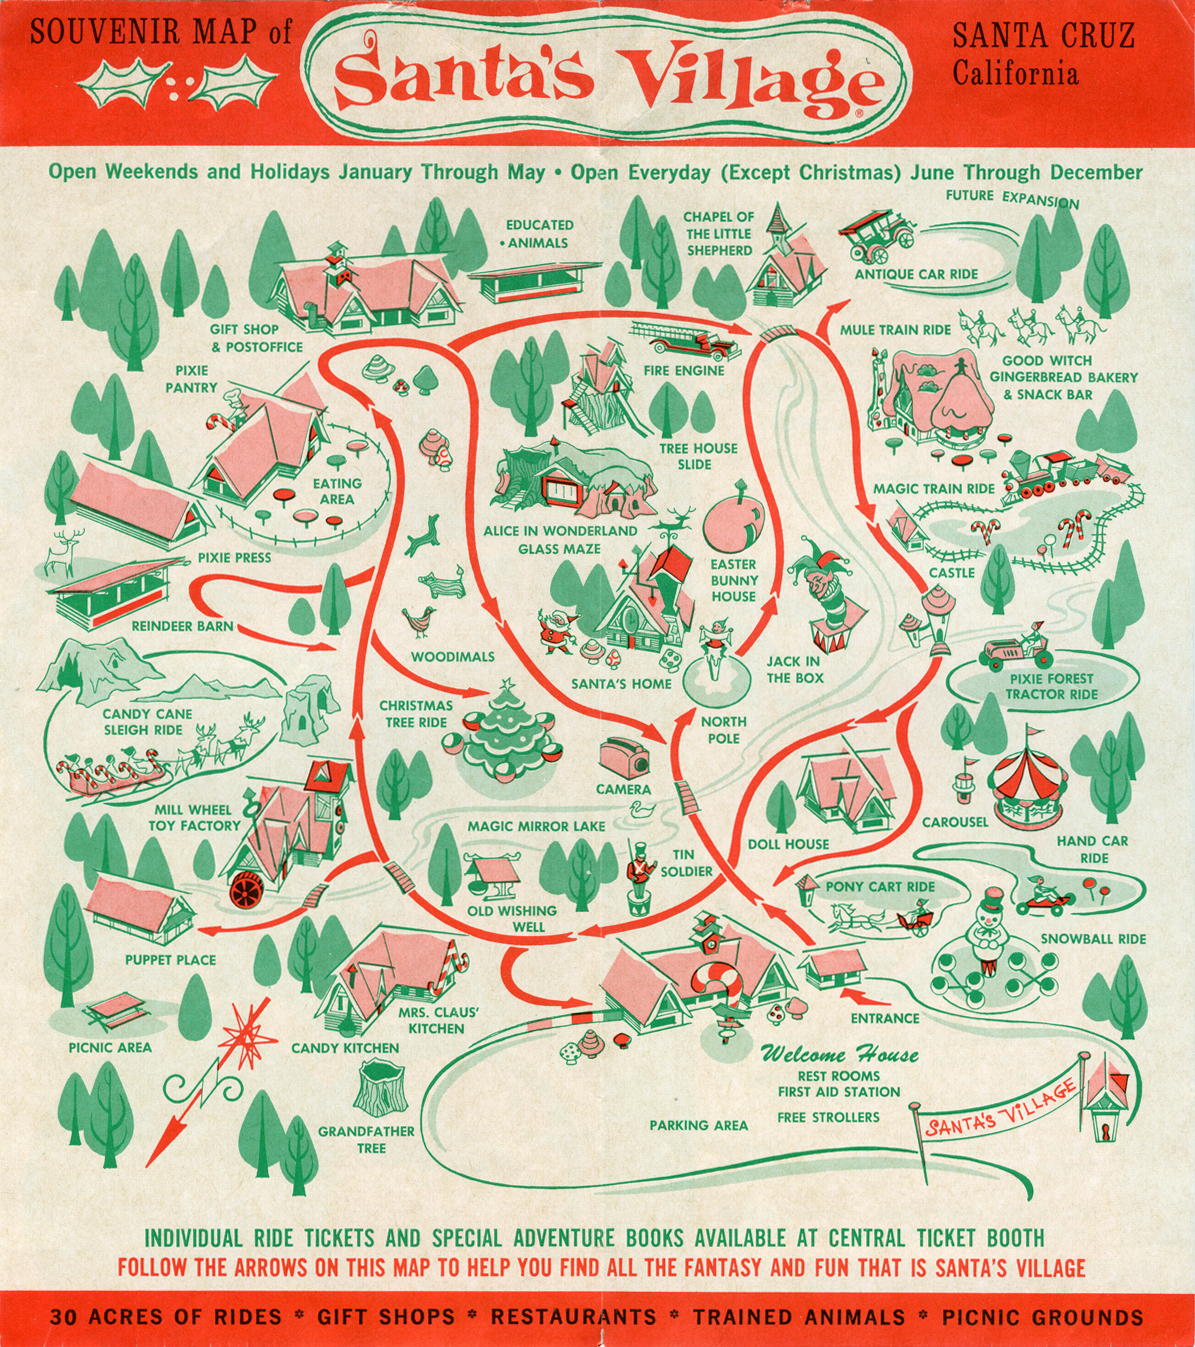 A brochure for Santa's Village, the theme park that used to stand on the site of the RV park where a man calling himself Robert Evans lived with Lisa, the girl authorities would later realize was not his daughter.